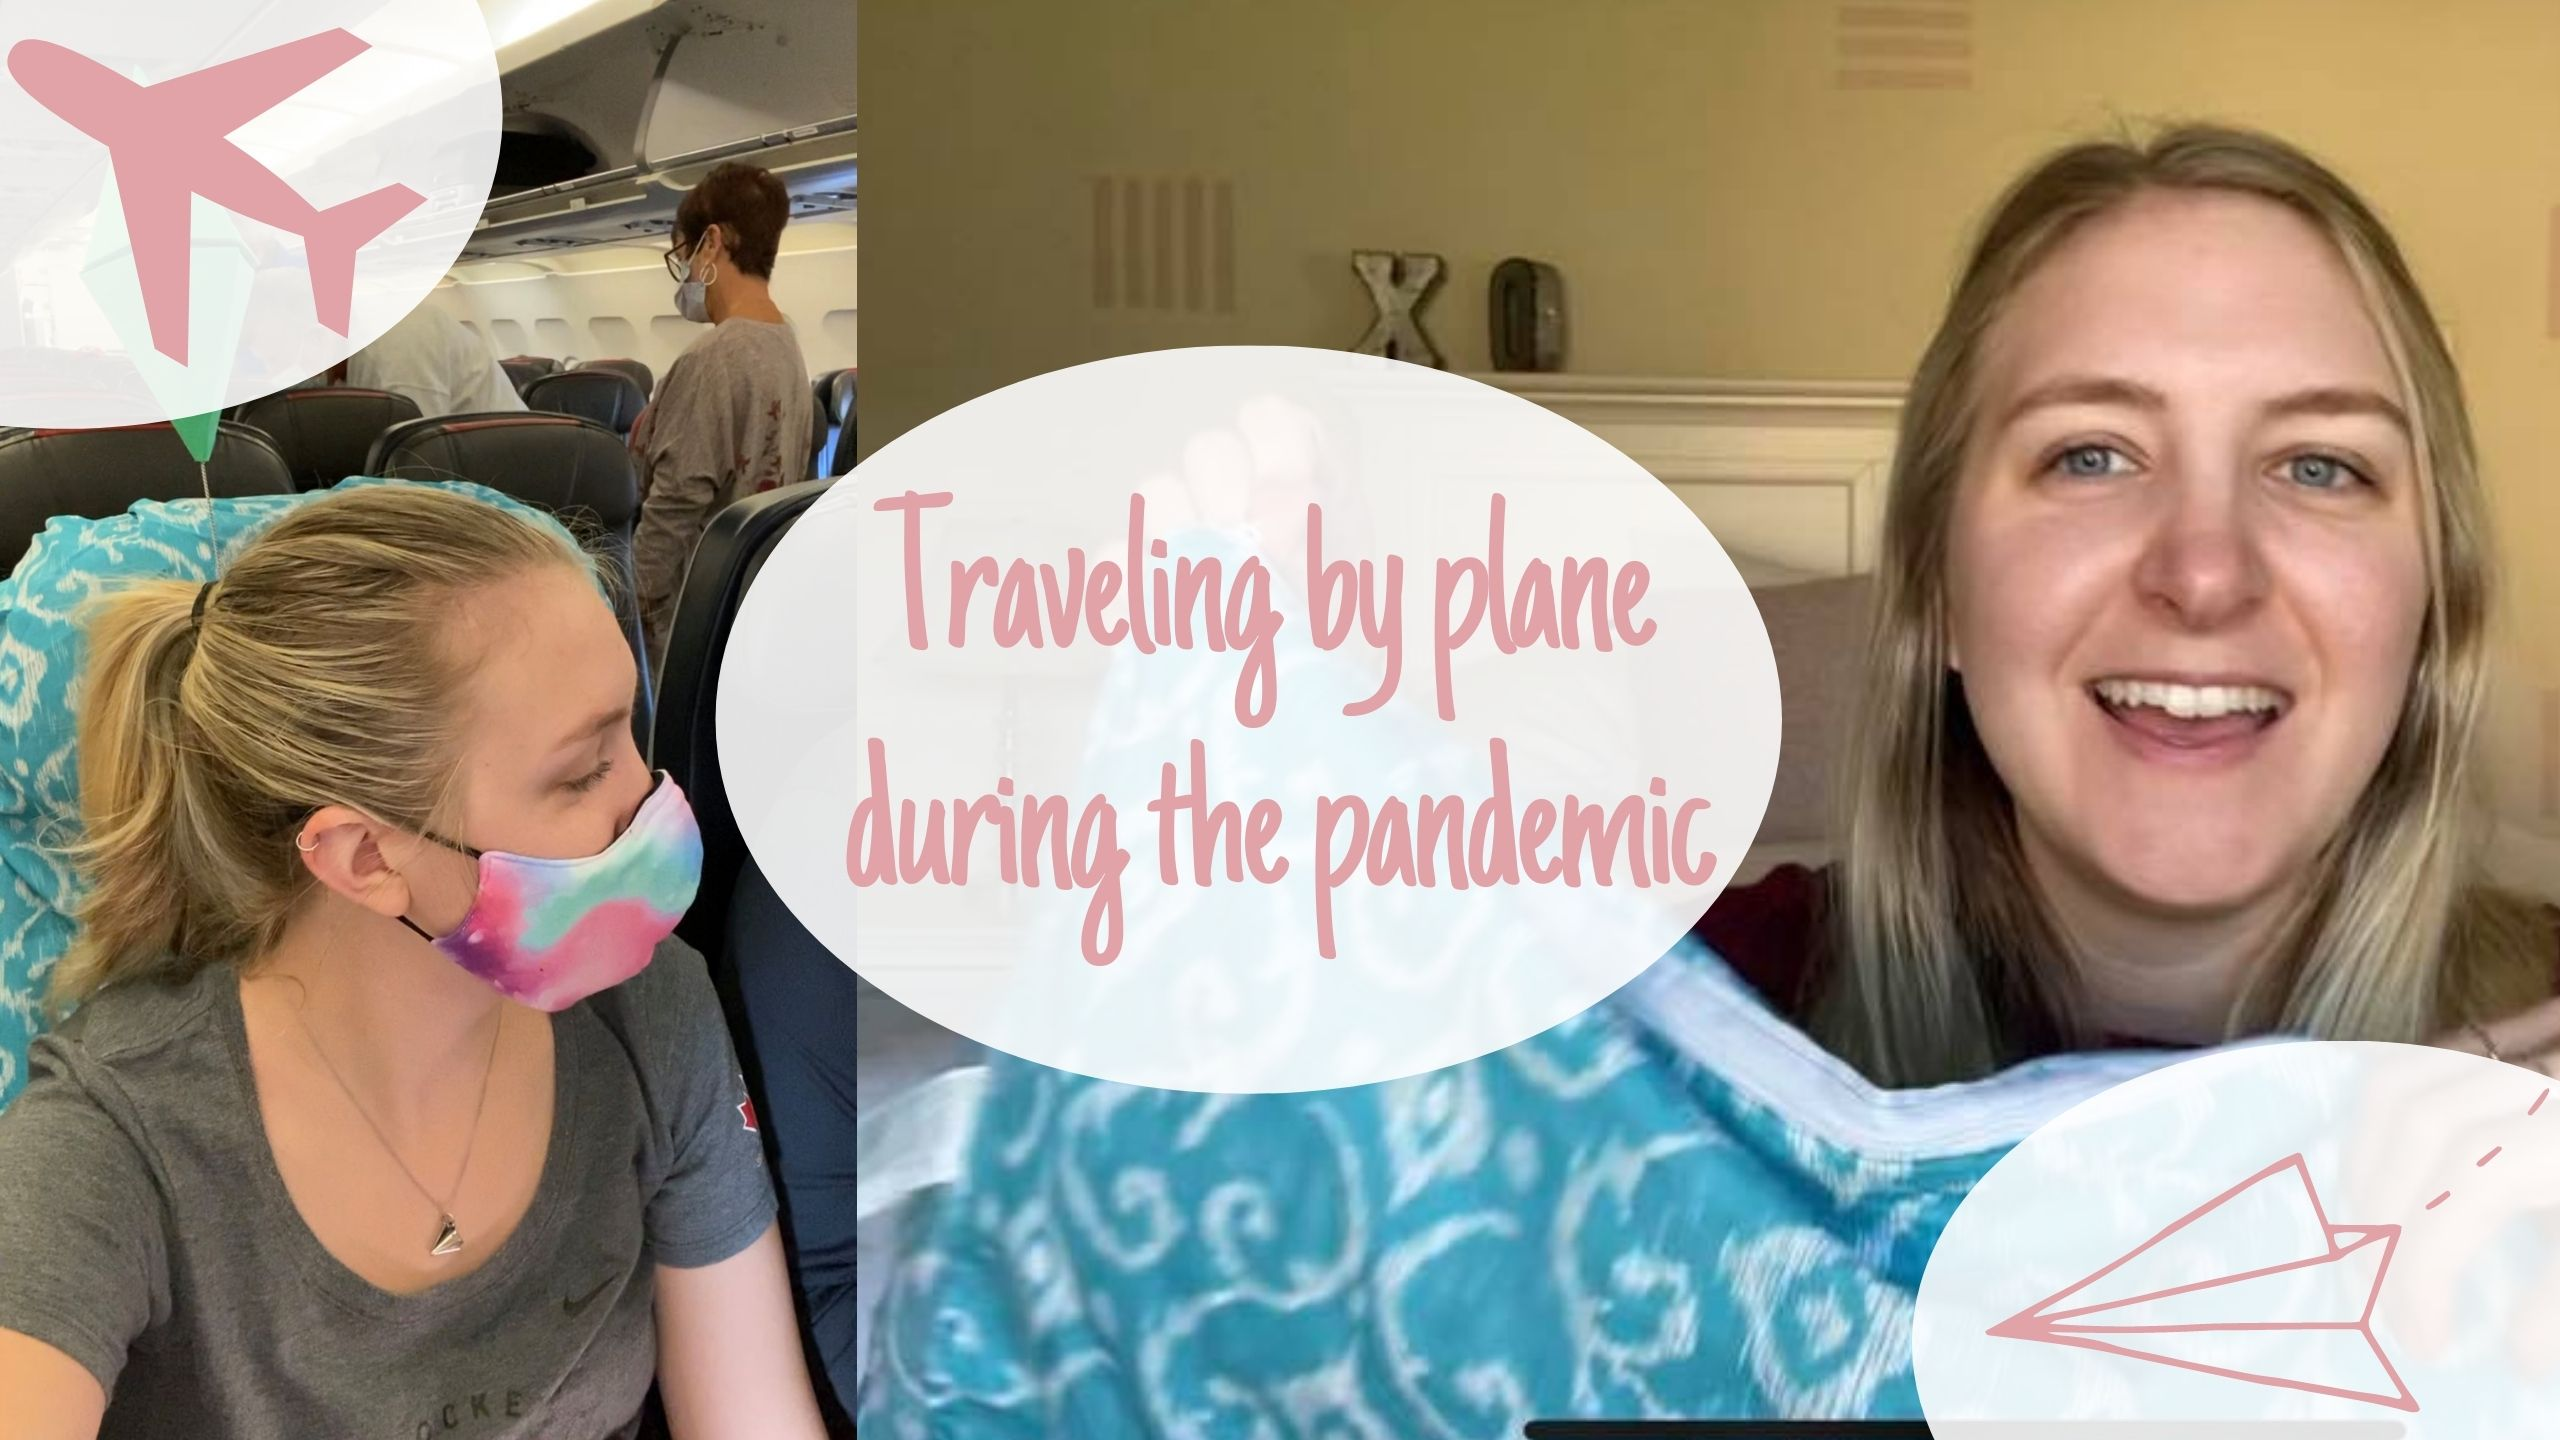 Traveling by plane during the pandemic